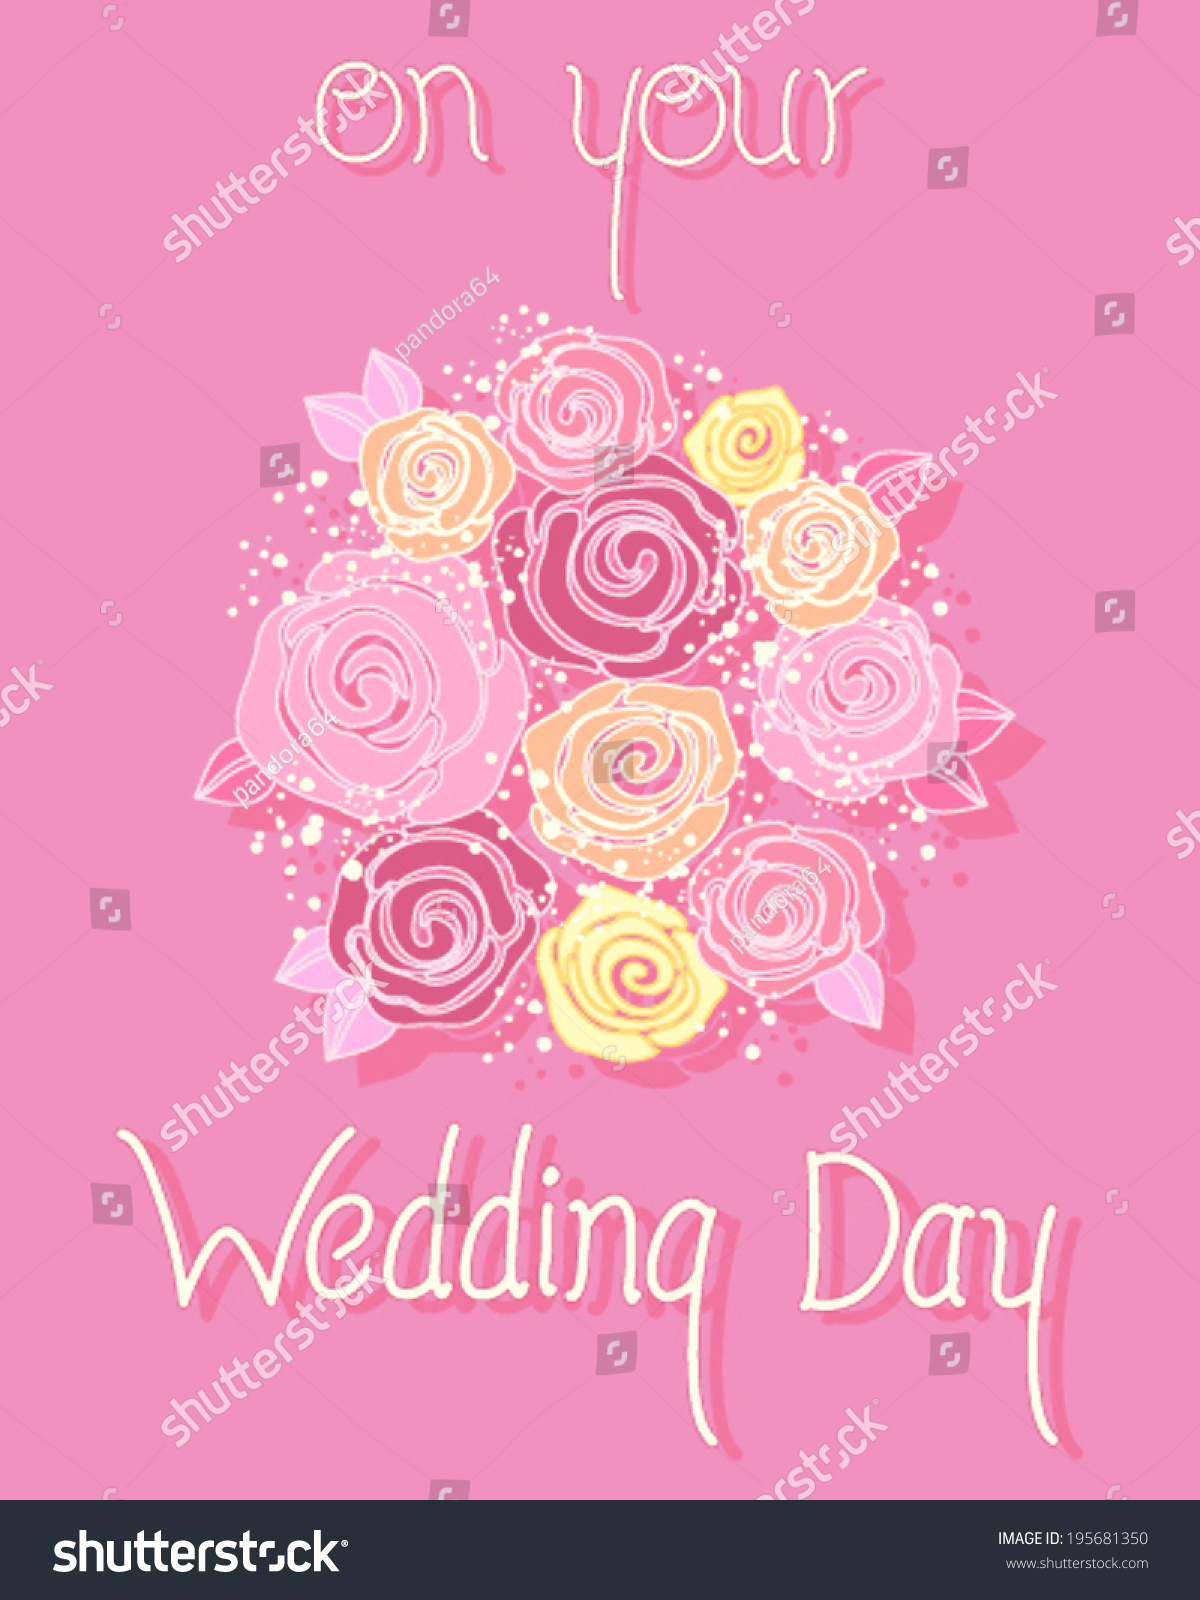 Wedding Day Greeting Card With Rose Bouquet On A Pink Background